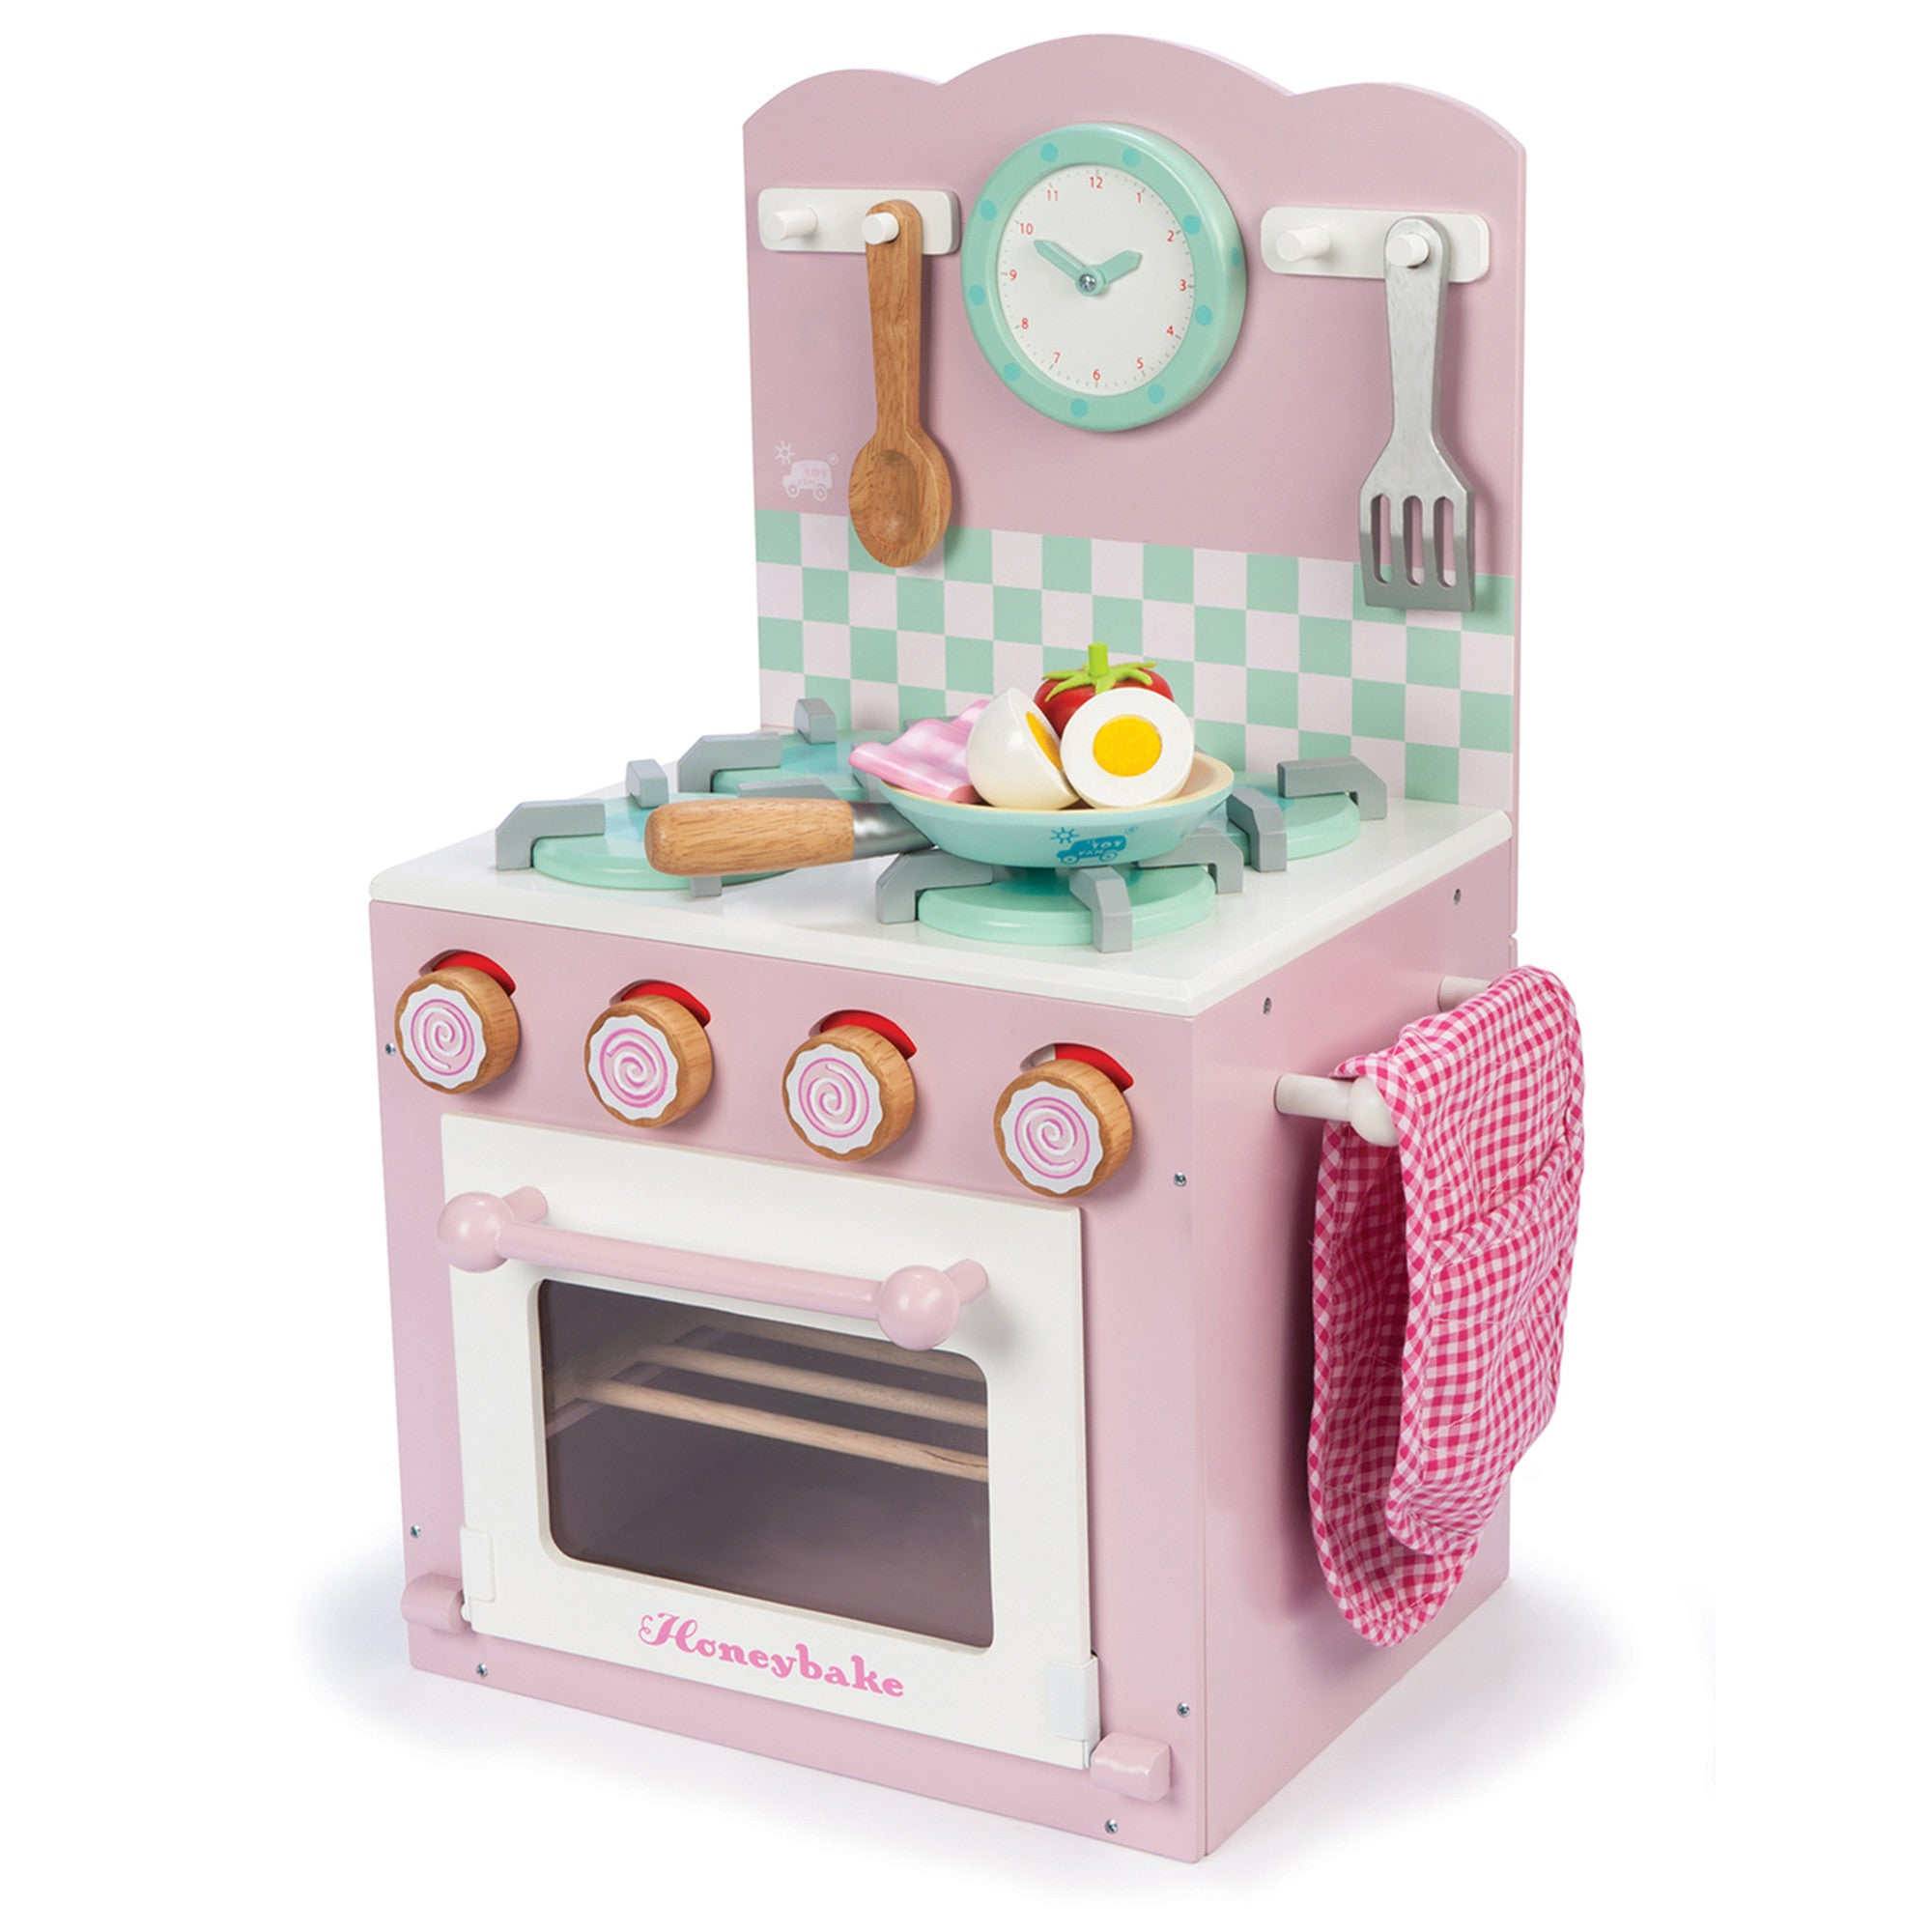 Le Toy Van Honeybake Home Kitchen Oven   - Le Toy Van - Little Earth Nest - 1